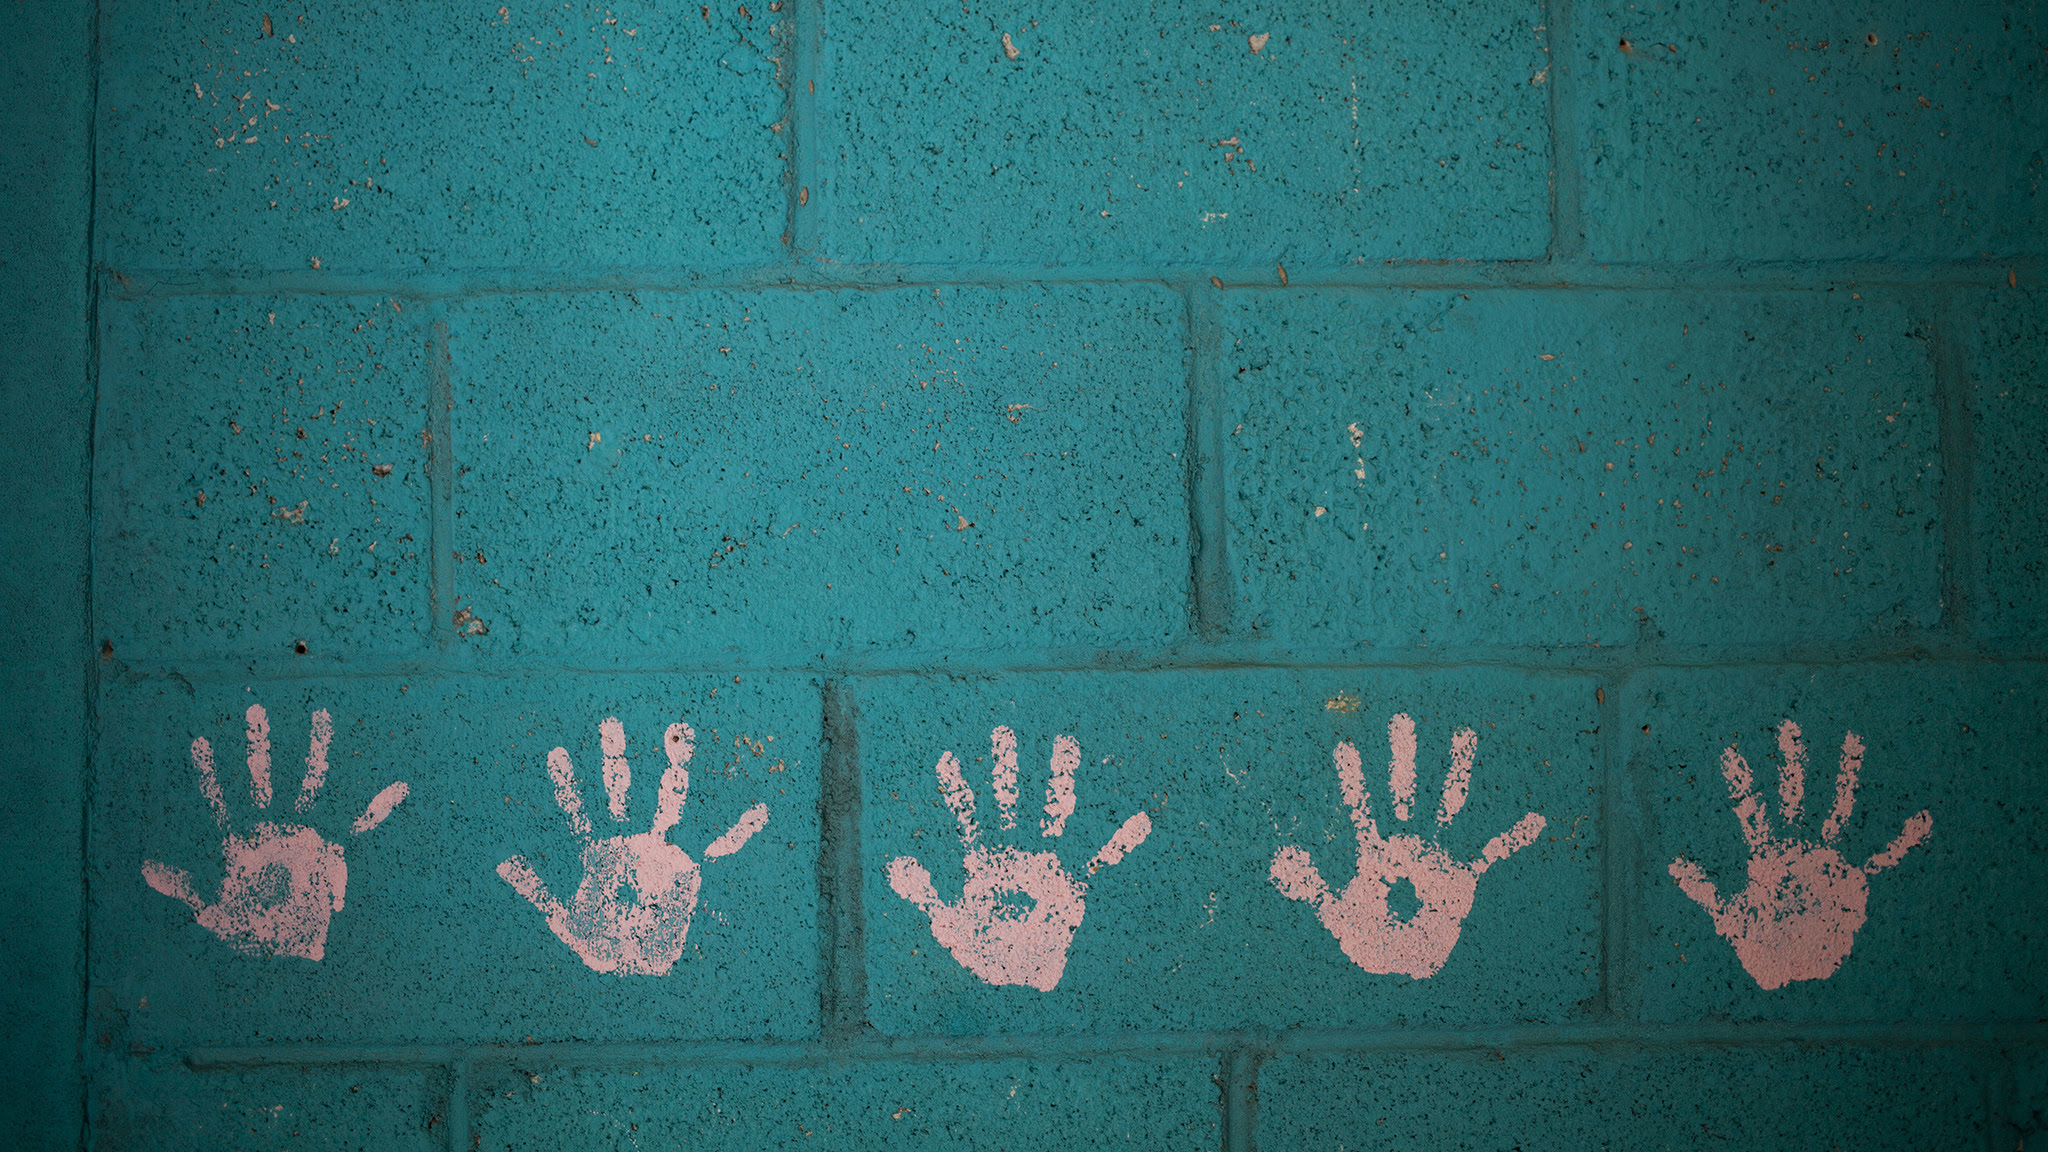 This Sept. 20, 2016 photo shows a child's room decorated with handprints inside an abandoned home in the neighborhood El Cambray in Santa Catarina Pinula on the outskirts of Guatemala City, one year after a mudslide destroyed the neighborhood.  The mandatory evacuation order was ignored by a half-dozen residents who apparently cannot afford to live anywhere else, and for the survivors, the psychological scares have not faded. (AP Photo/Moises Castillo)